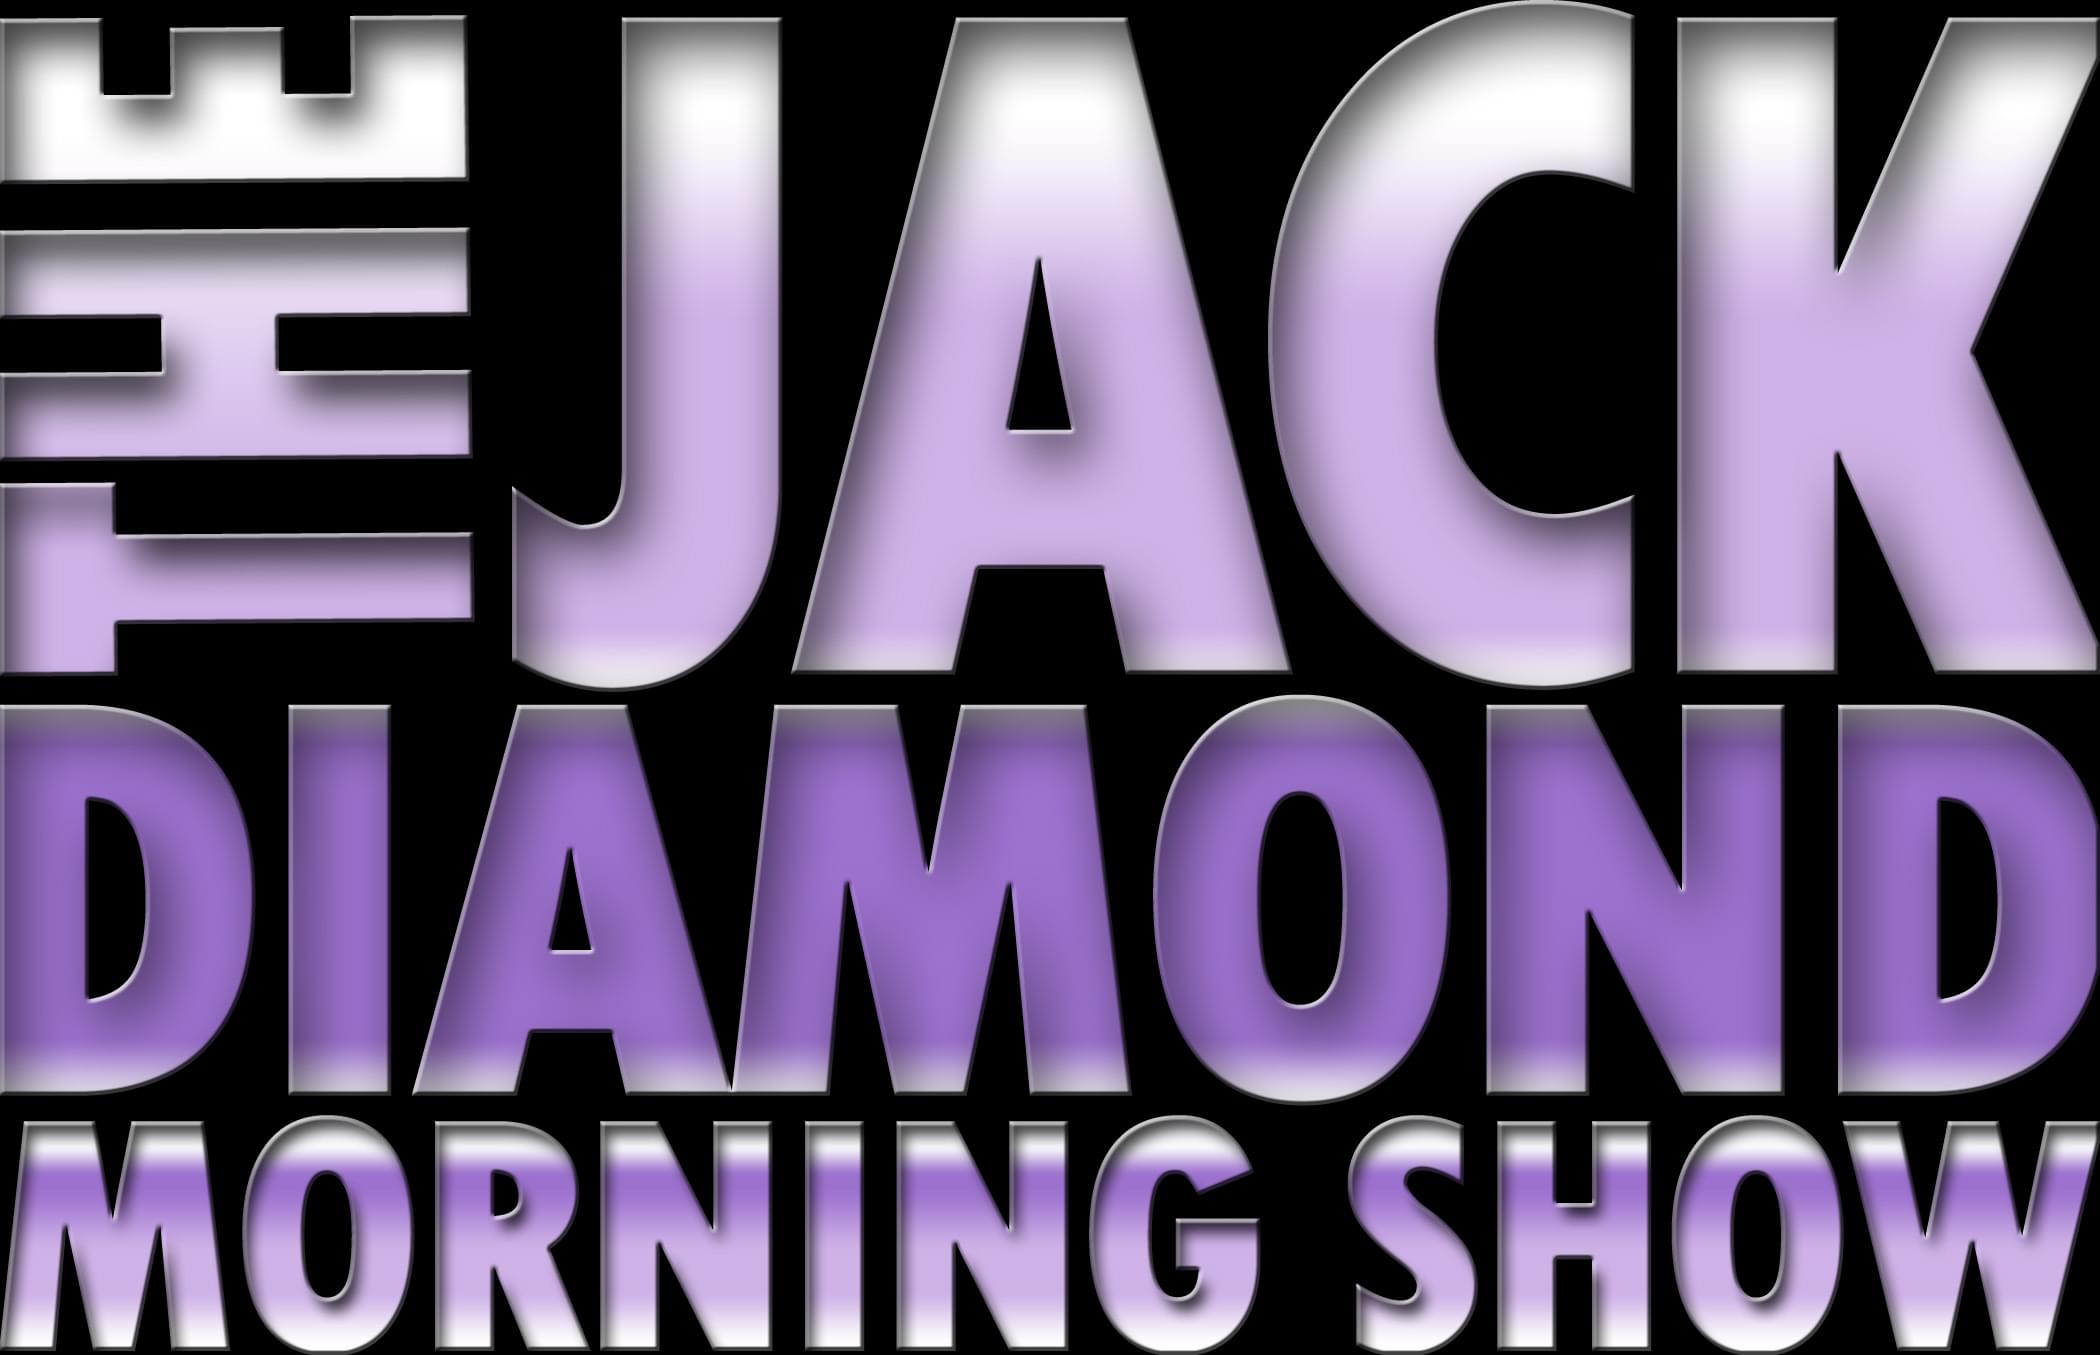 Listen to The Jack Diamond Morning Show (03–08-2019) The Show, the whole show, and nothing but the show!